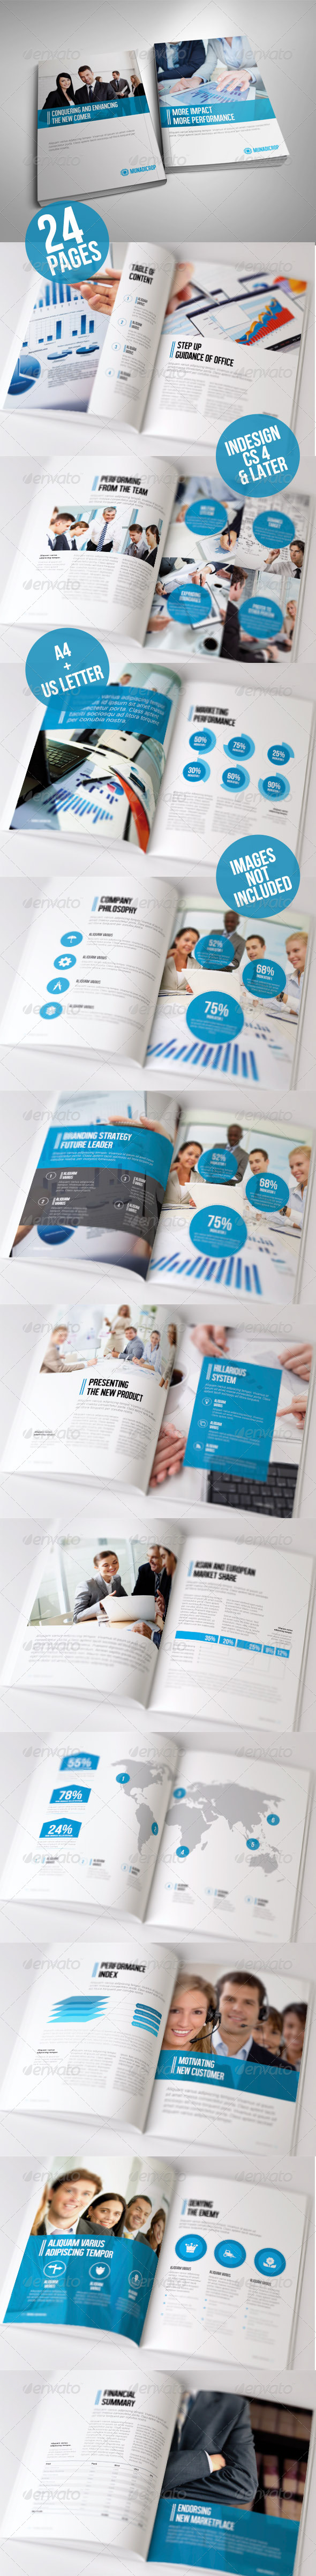 GraphicRiver Kasongan Company Annual Report Volume 3 5997957